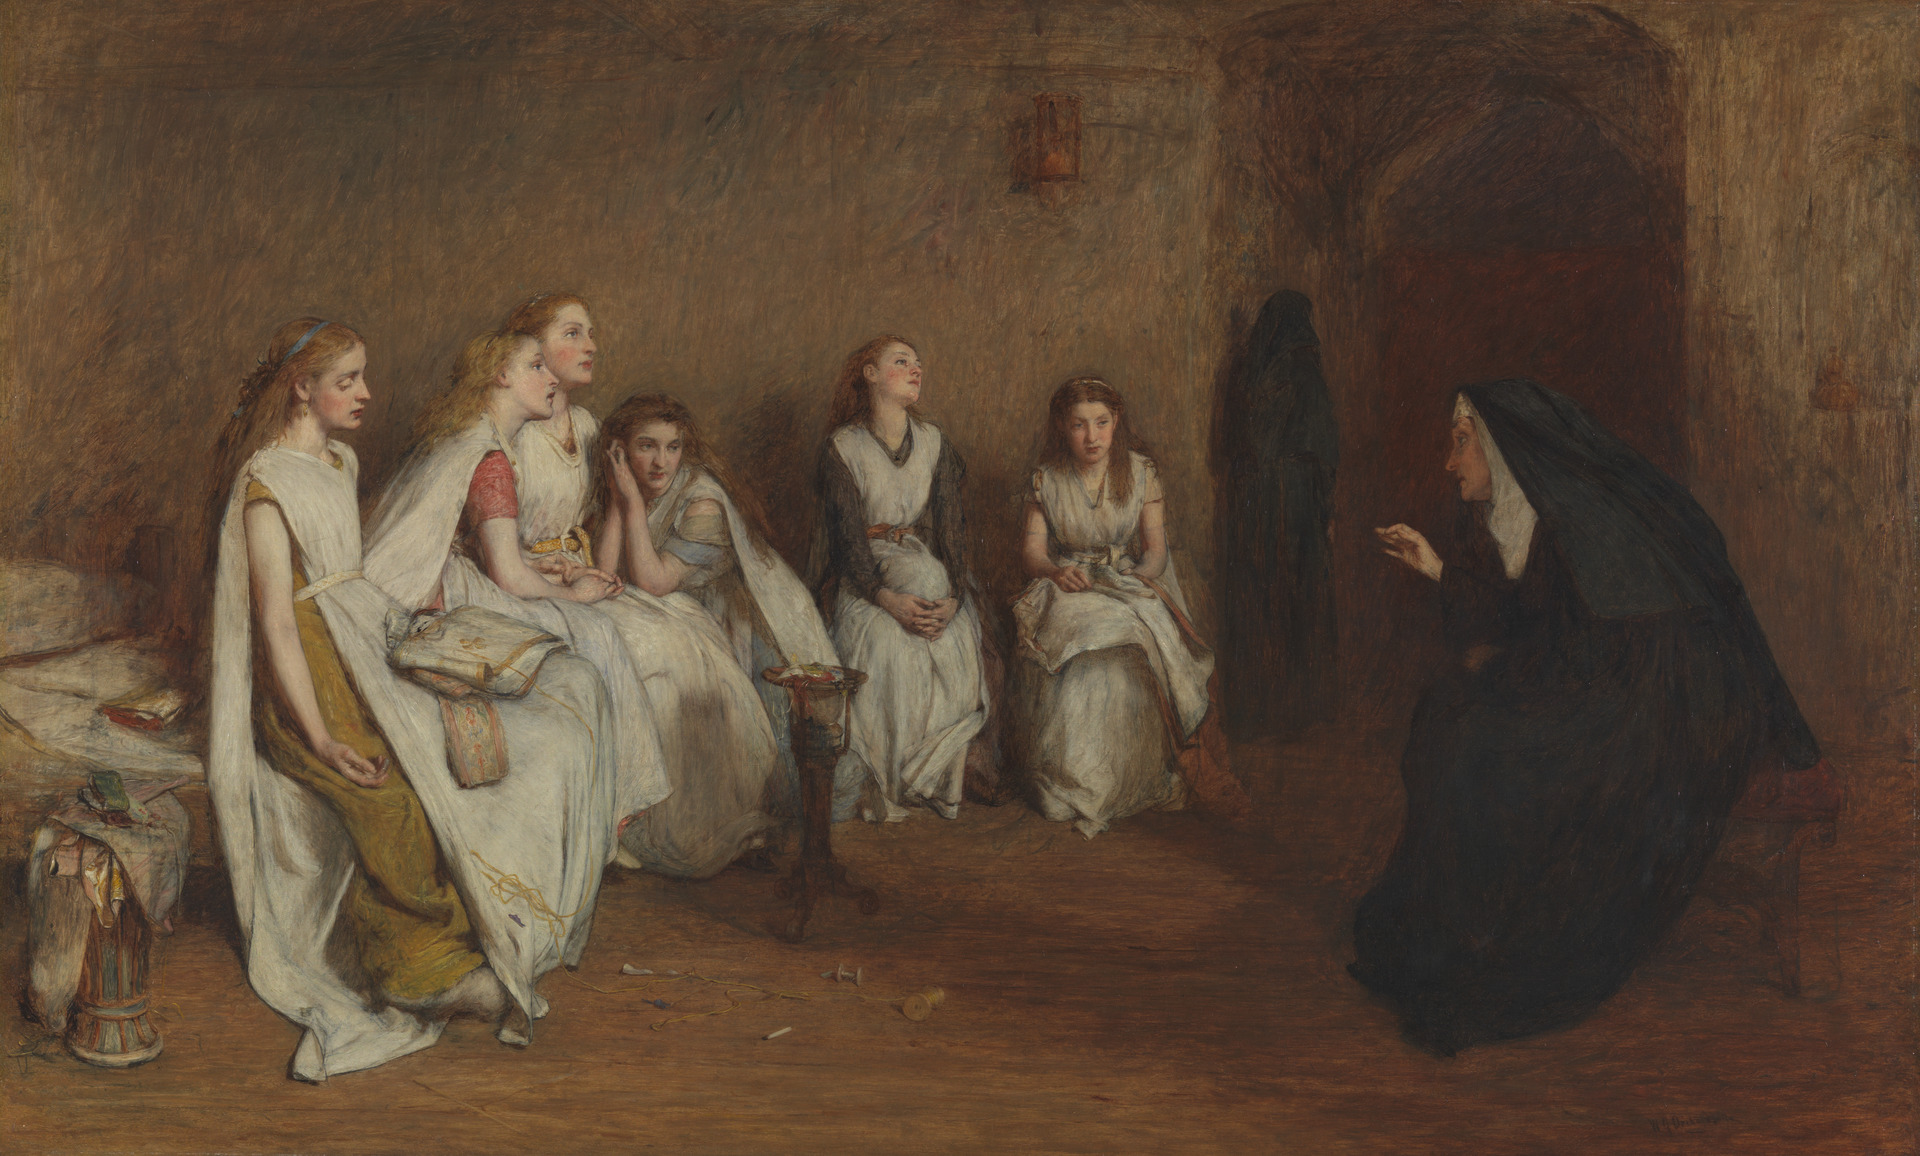 Fig. 1 William Quiller Orchardson, The Story of a Life, oil on canvas, 1866